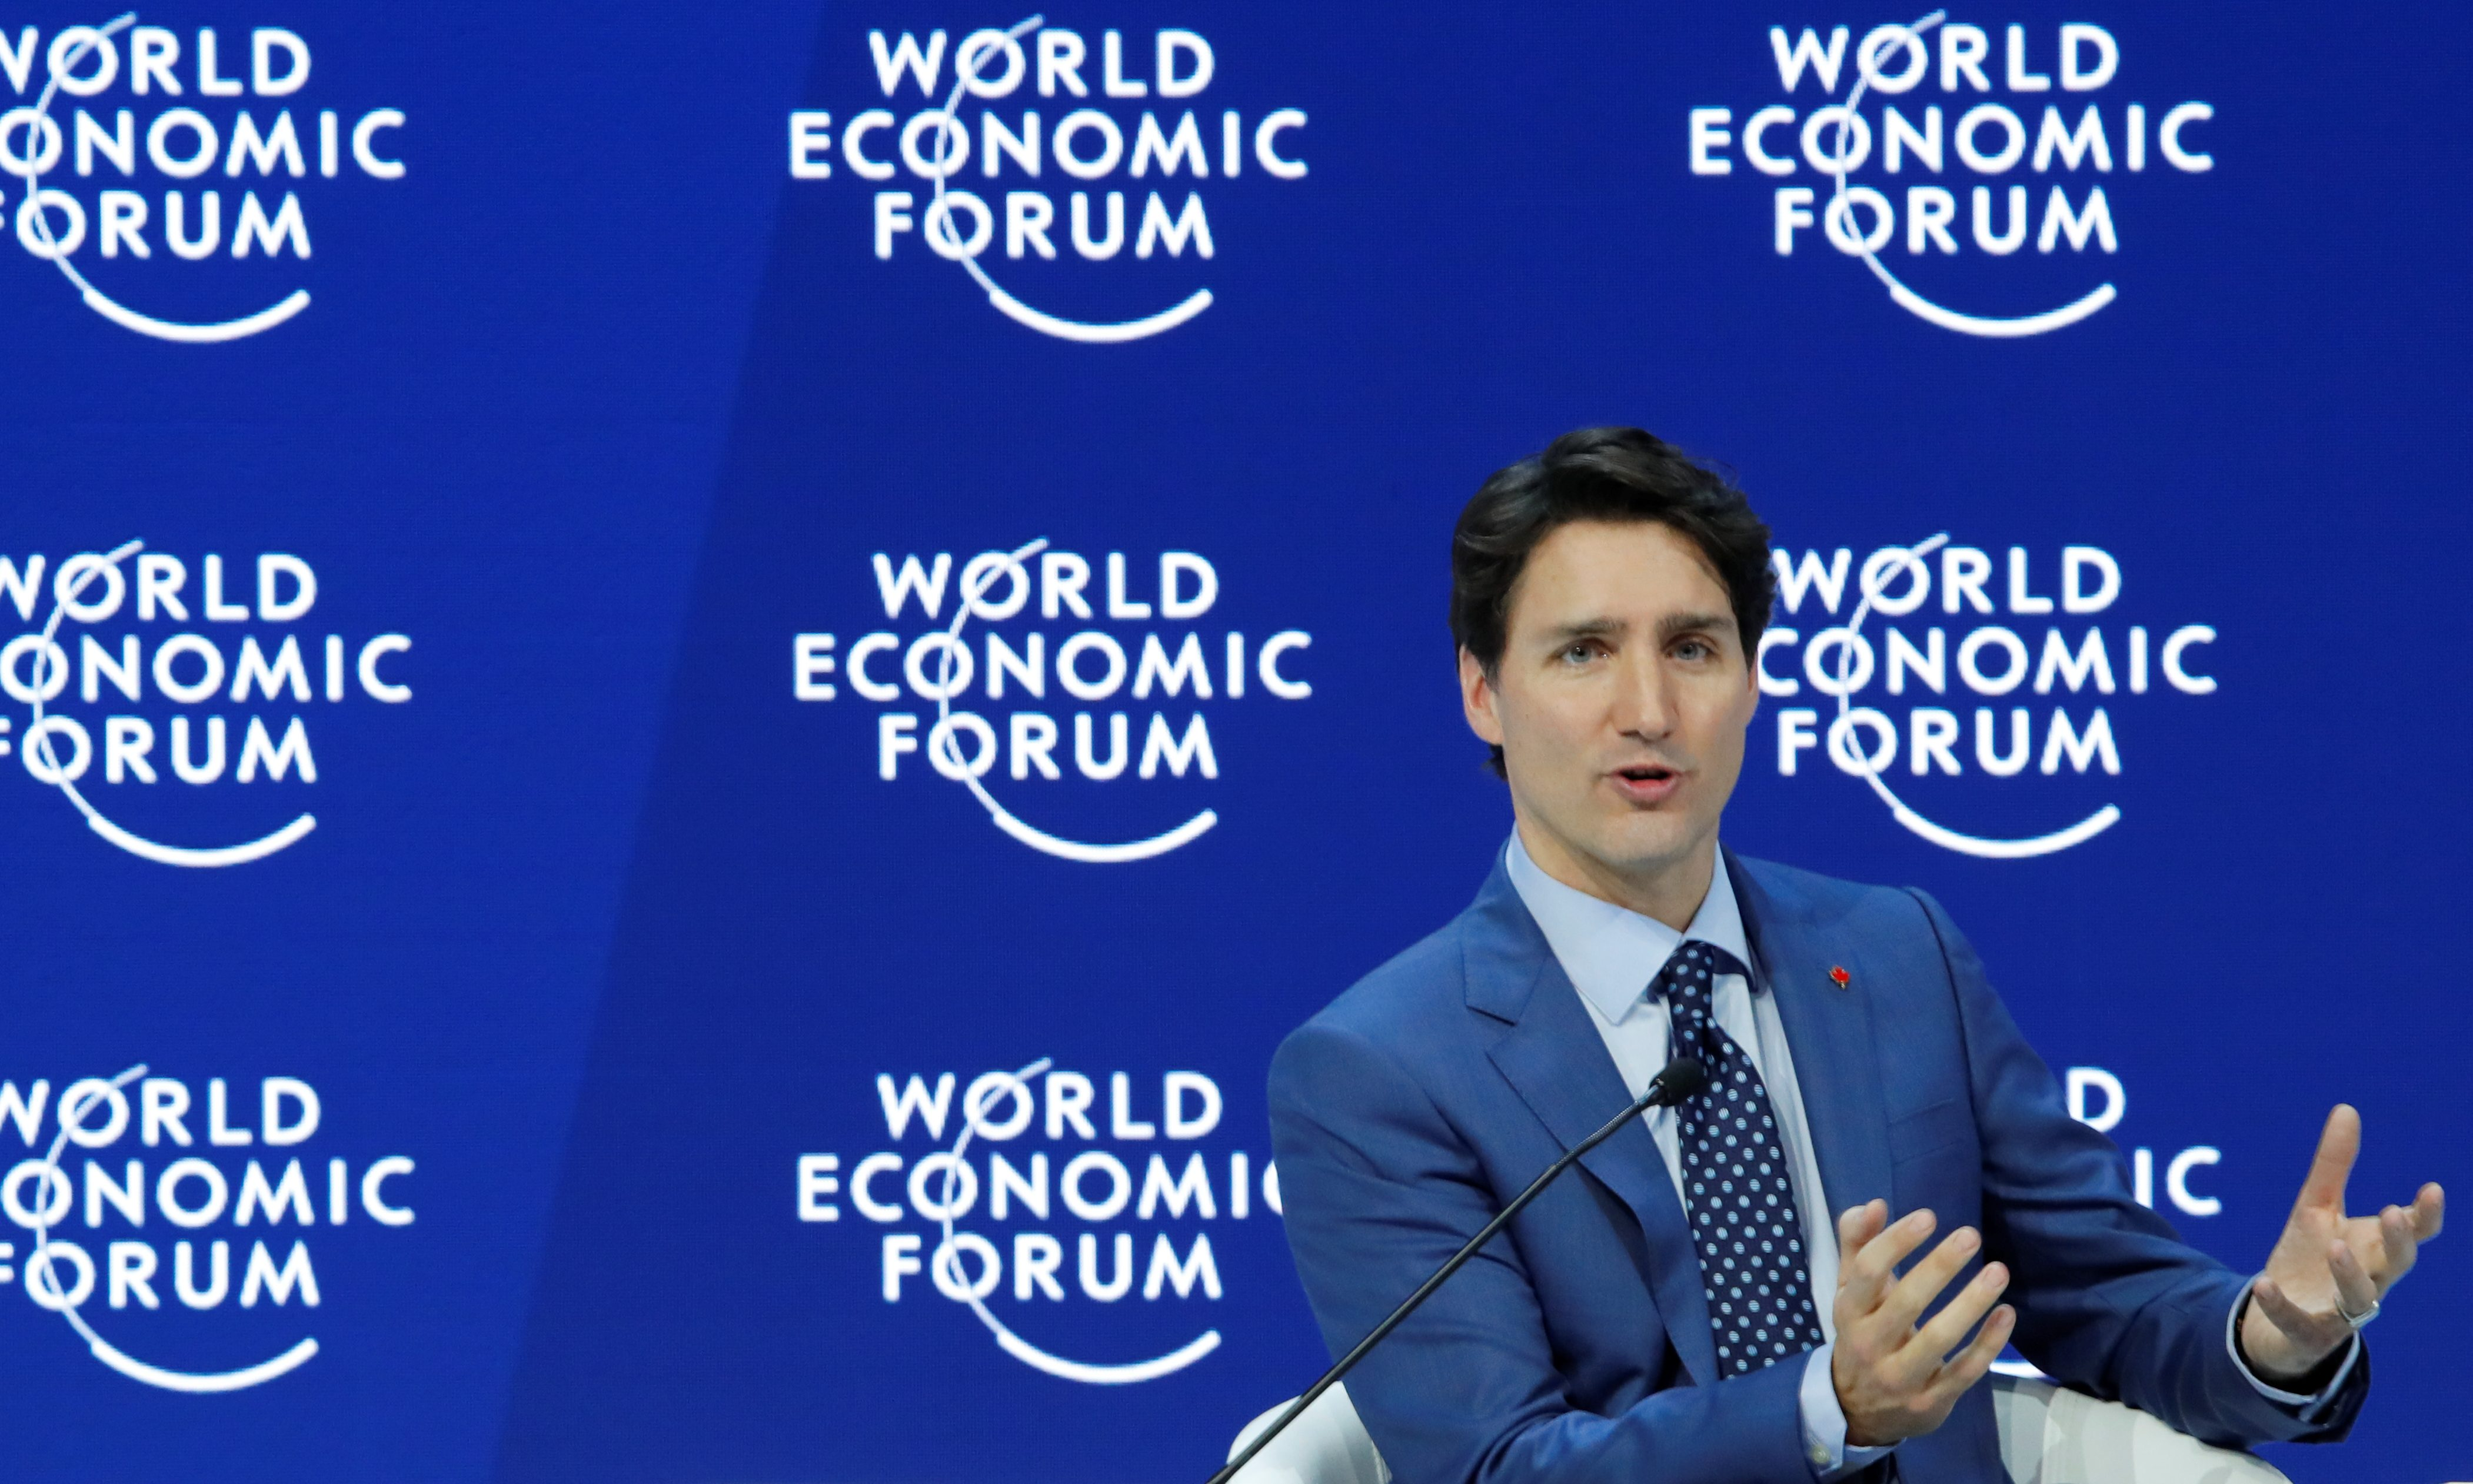 Canada's Prime Minister Justin Trudeau speaks during the World Economic Forum (WEF) annual meeting in Davos, Switzerland January 23, 2018 REUTERS/Denis Balibouse